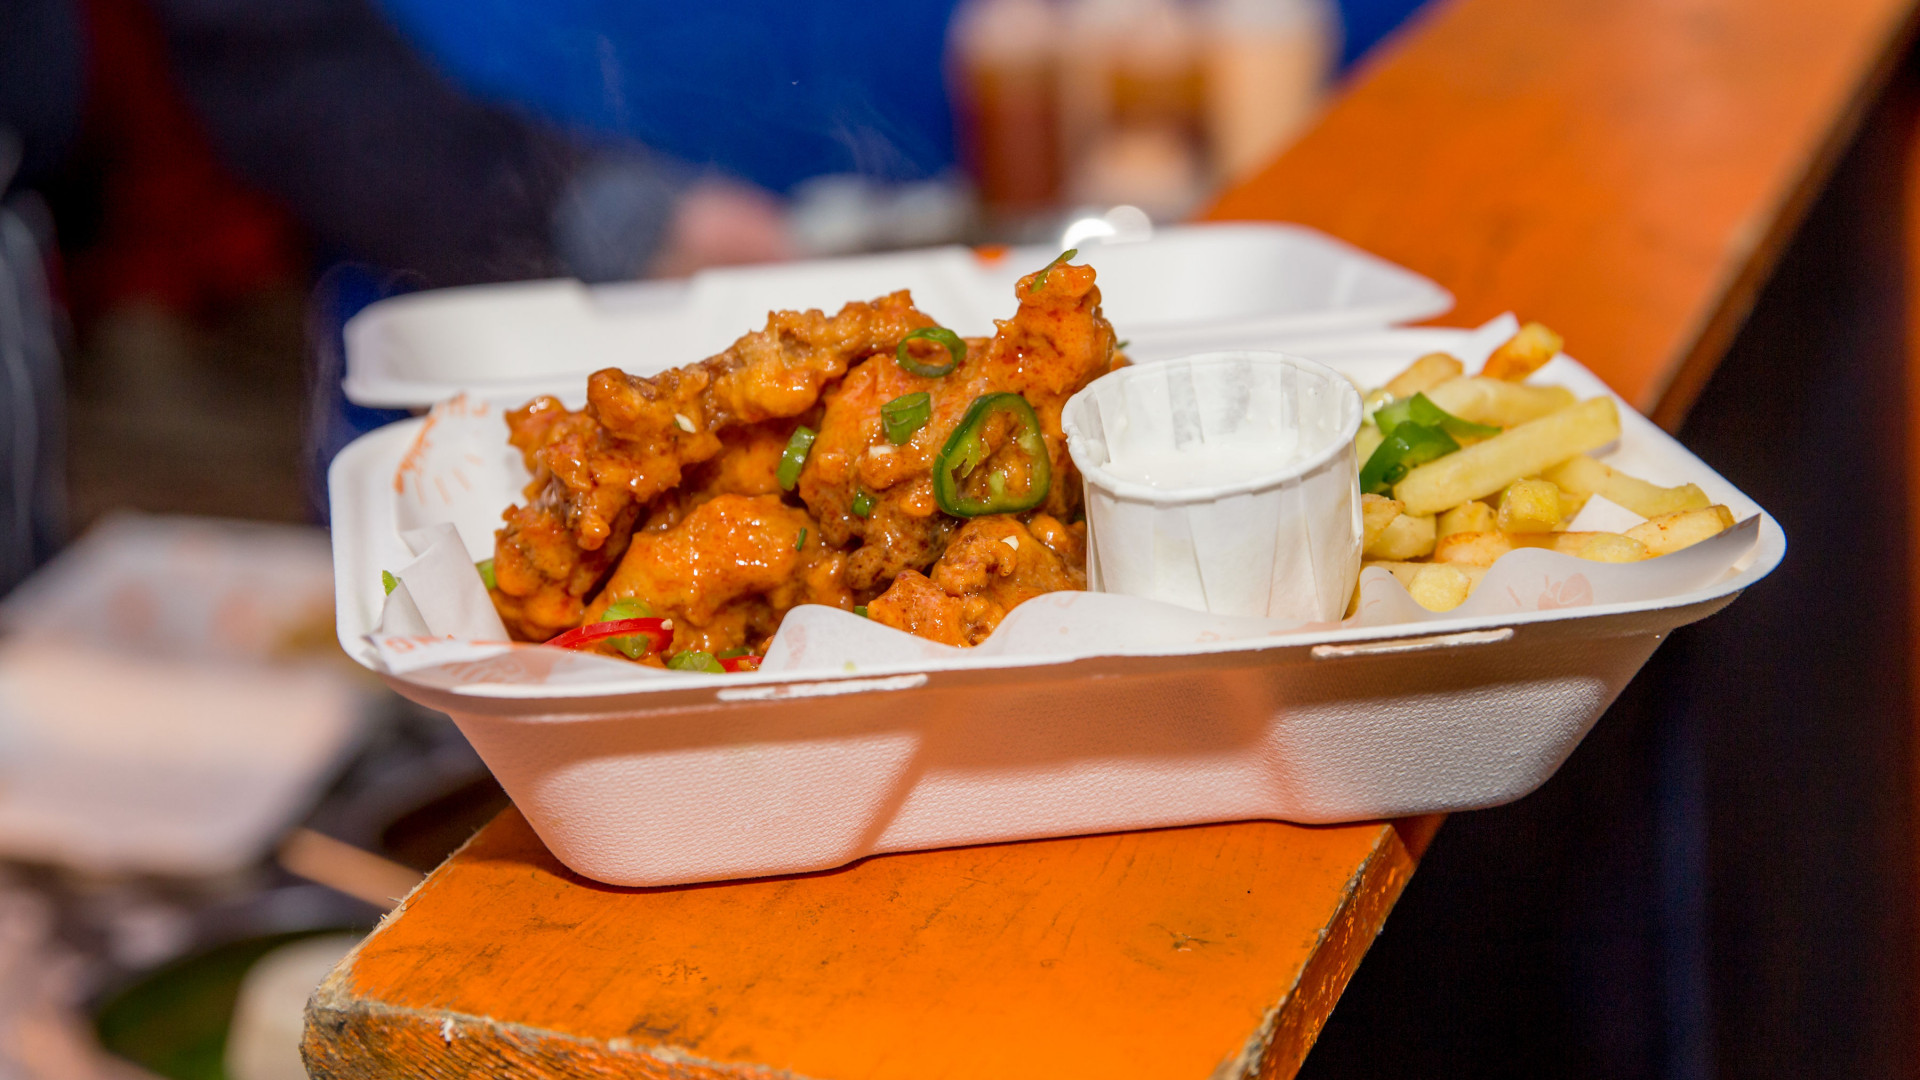 The Foodism 100 awards night 2019: Wings in buffalo sauce from Chuckling Wings